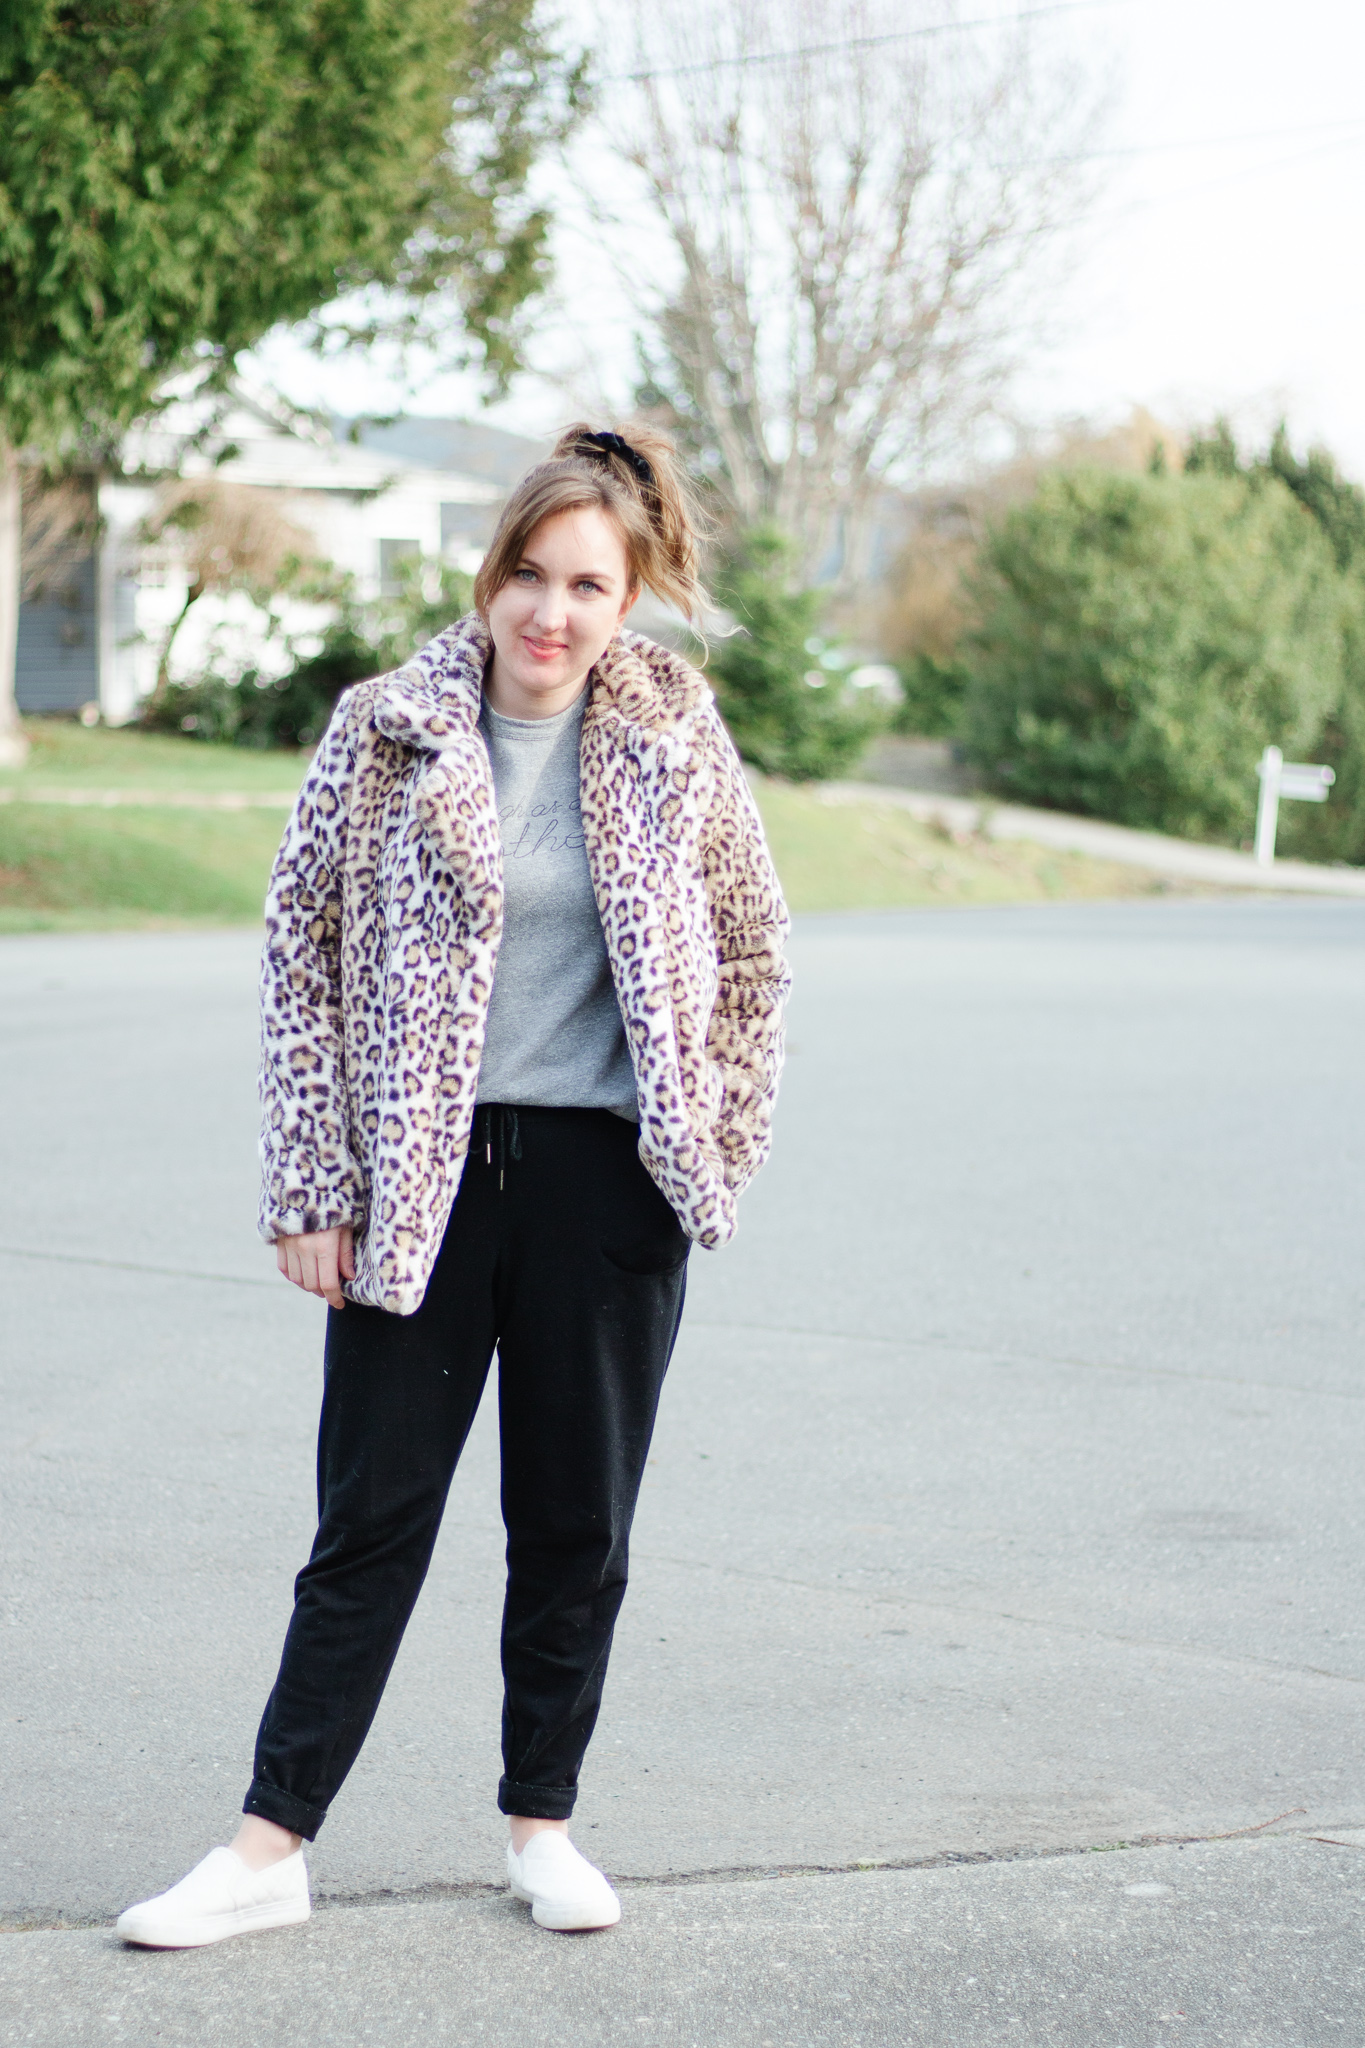 Leopard Coat Styled 5 Ways including dressed down in sweats or dressed up in a lbd